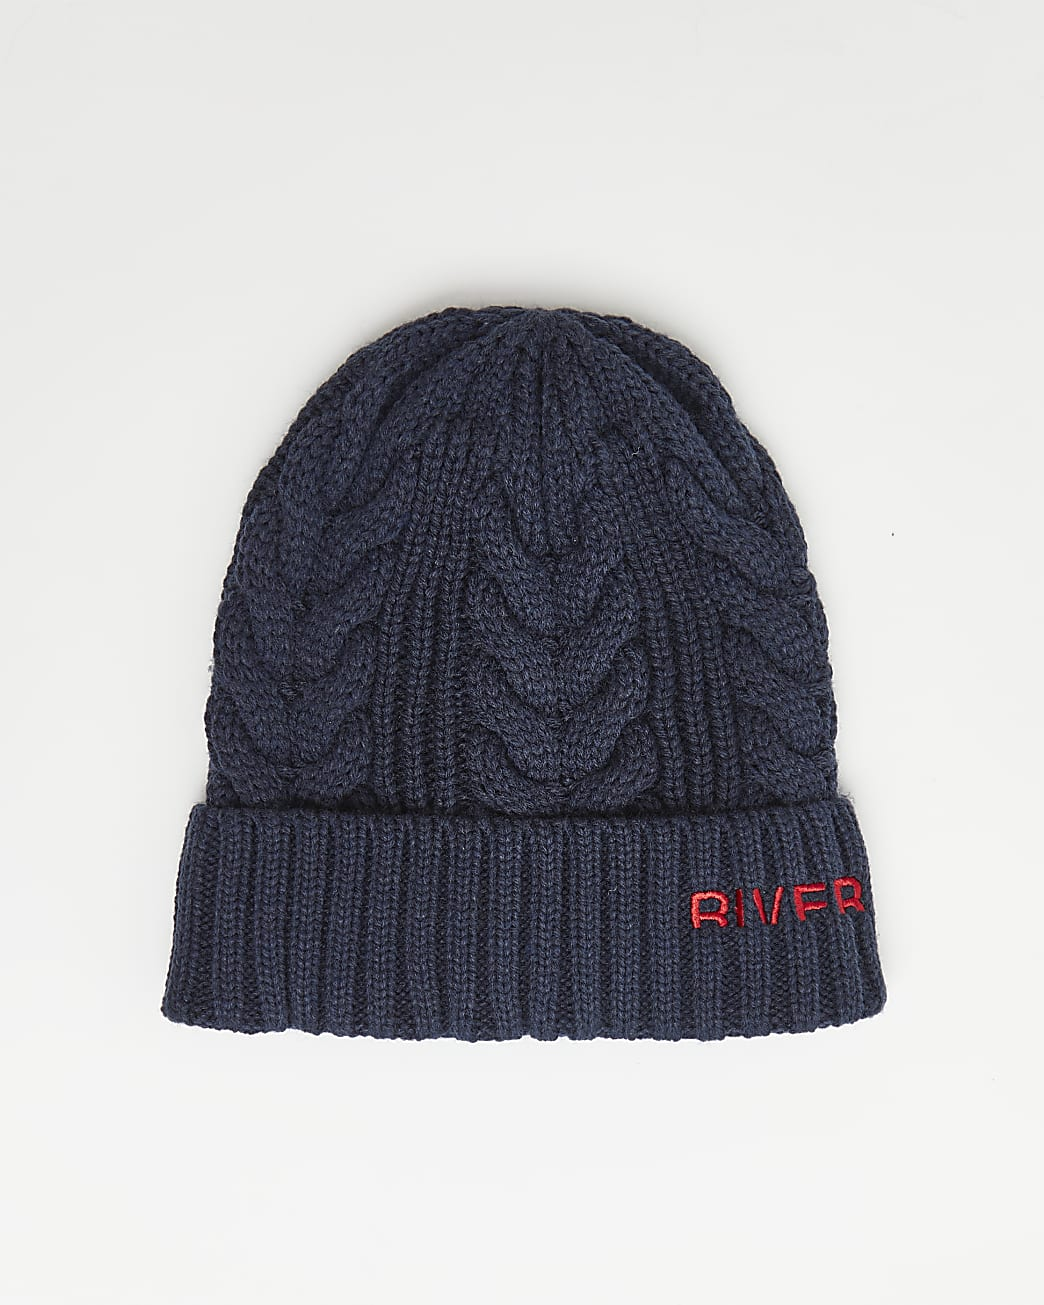 Navy RI branded cable knit beanie hat